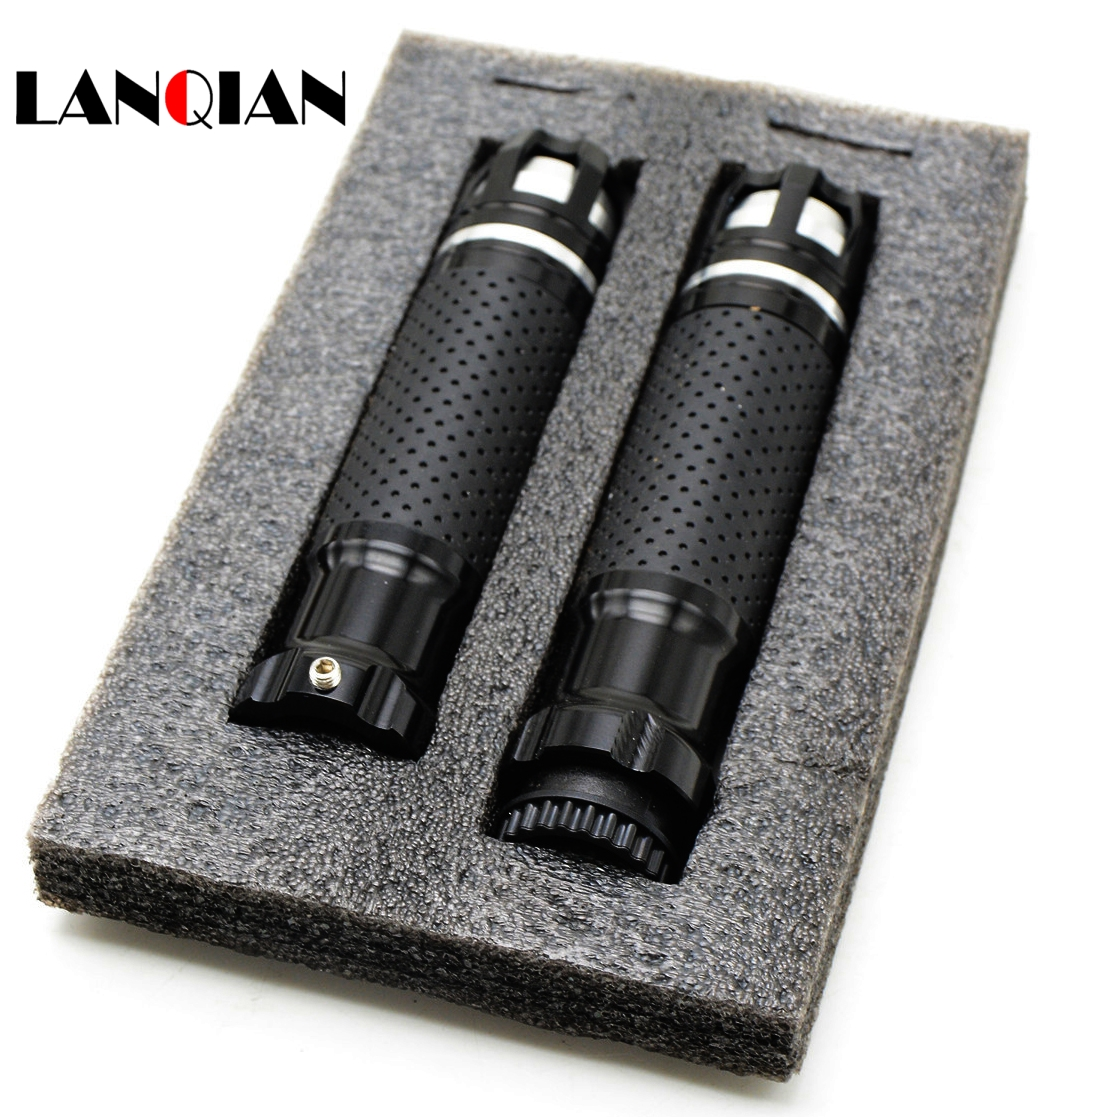 Universal 22mm Motorcycle Handlebar Brake clutch Hand Grips for Kawasaki Z ZR ZX 125 250 750 750R 750S 800 1000 SX